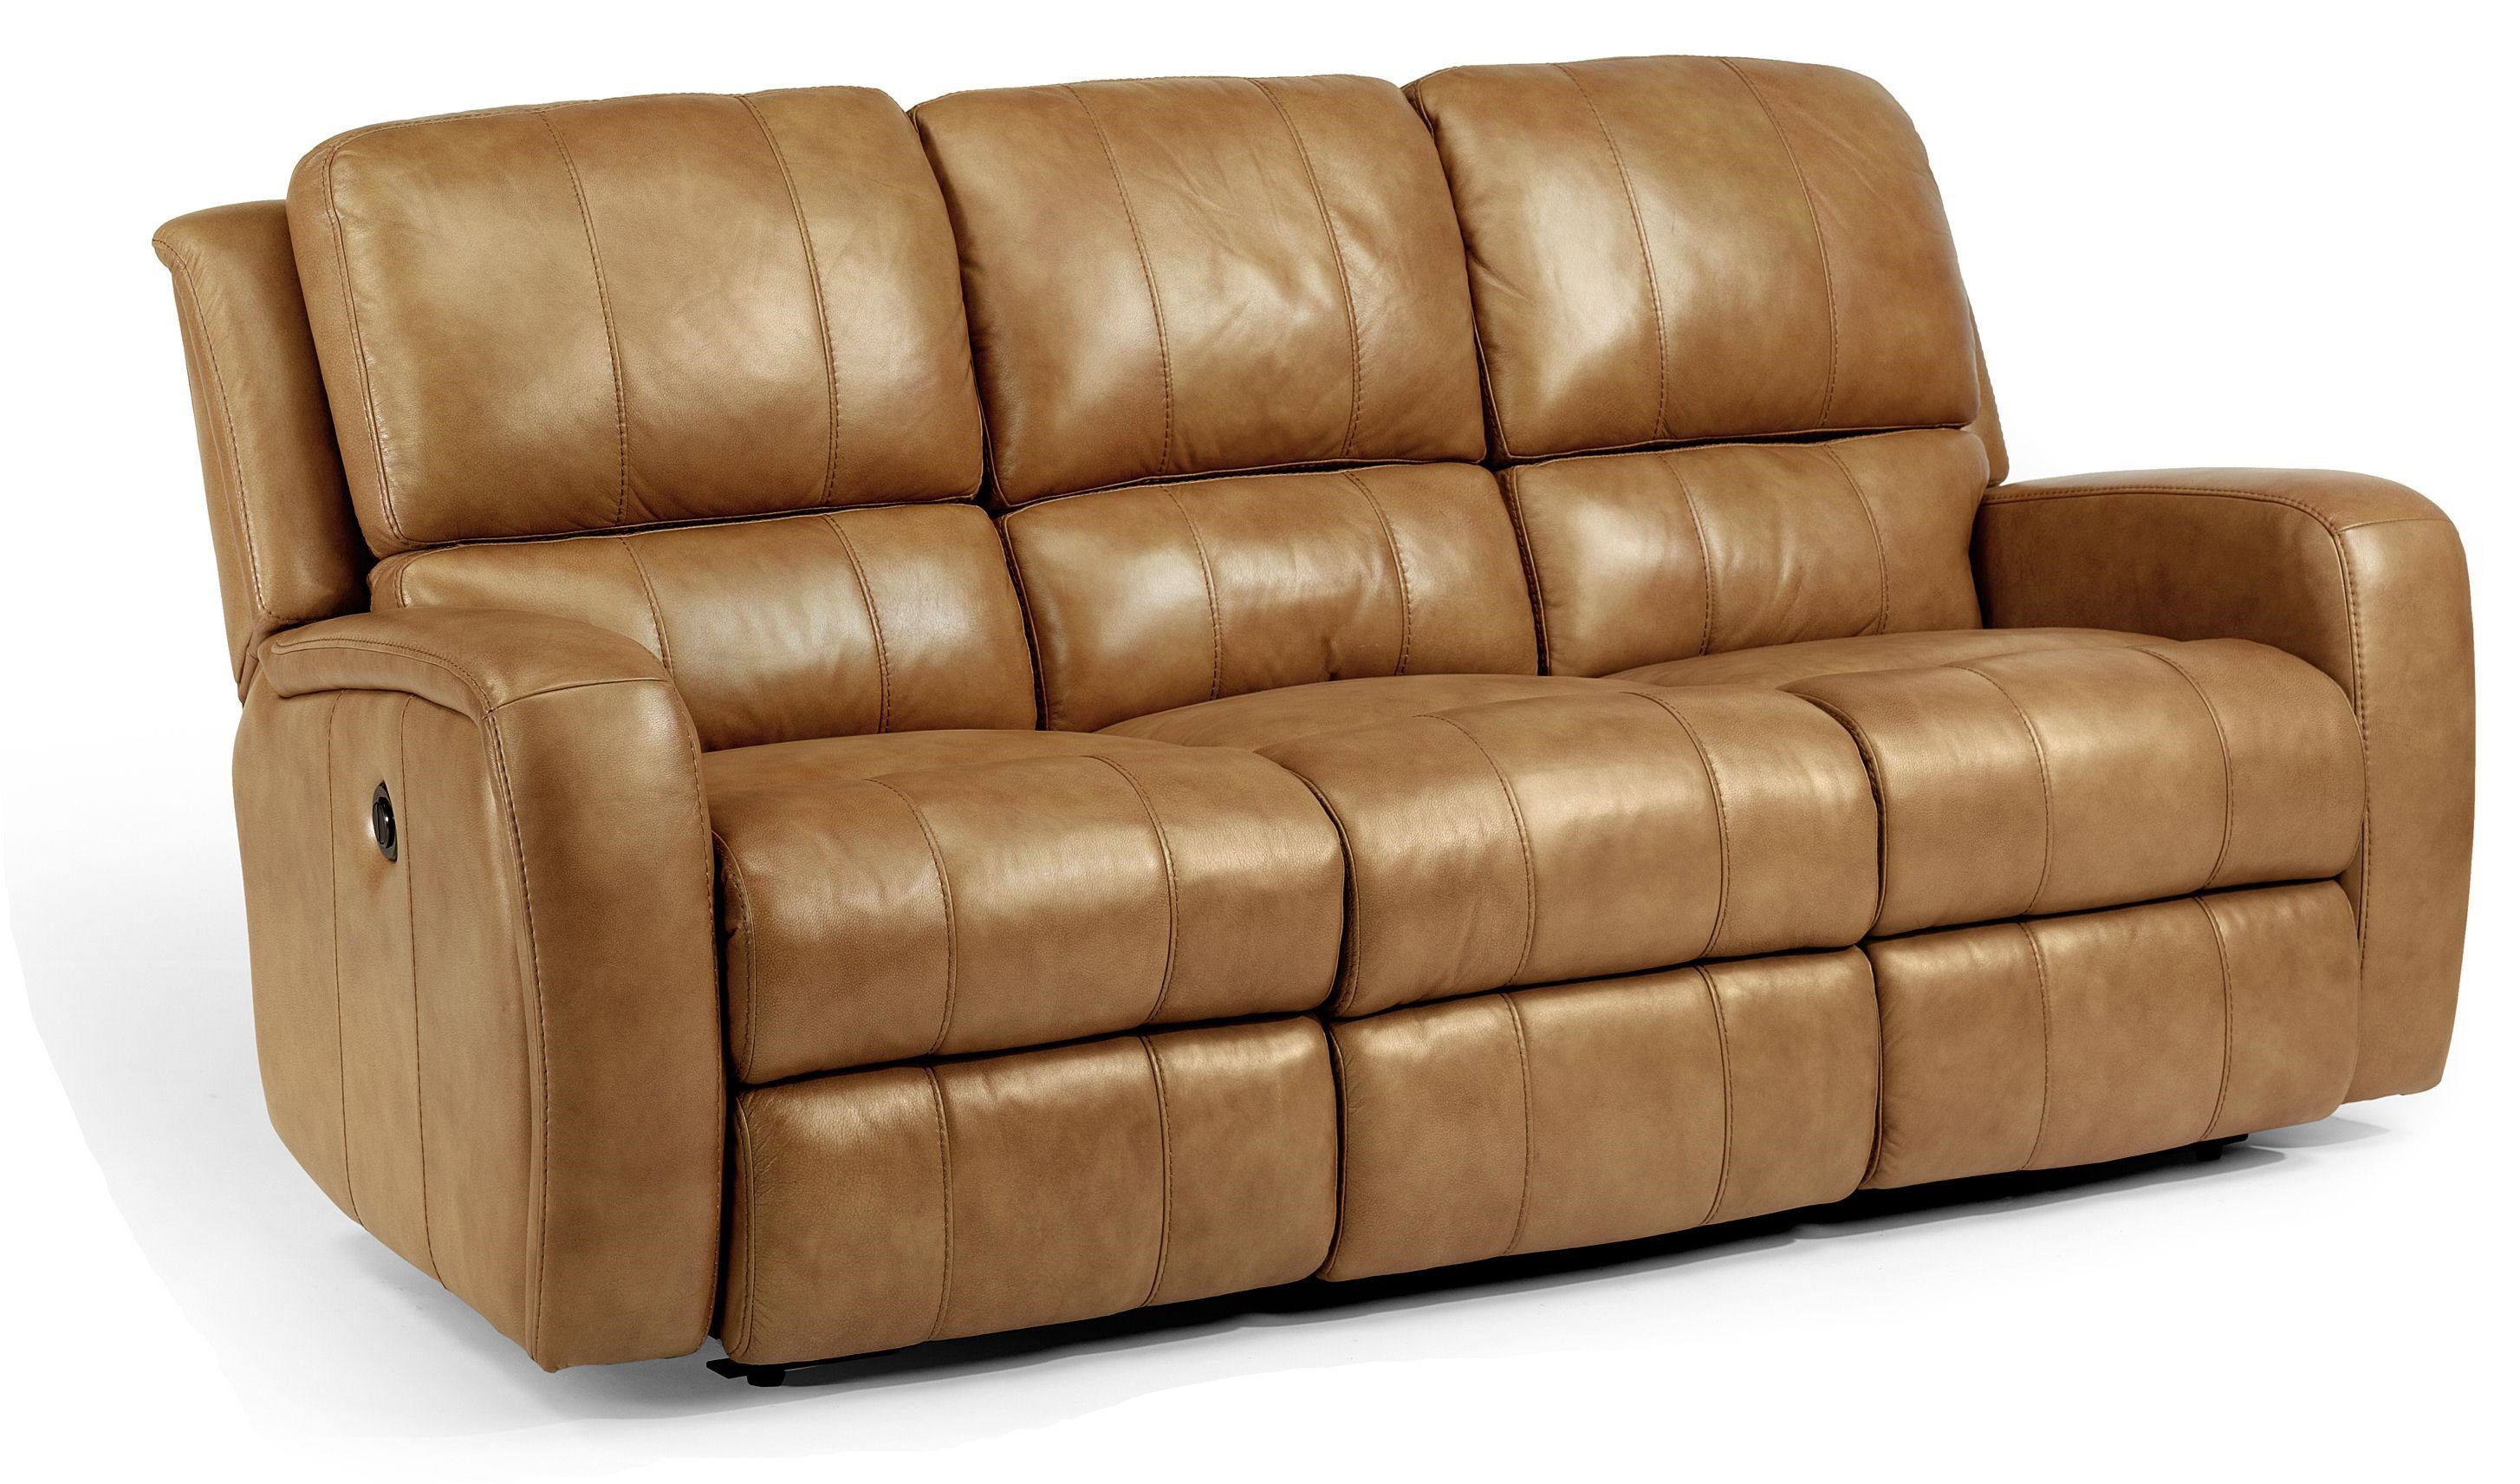 Delicieux Flexsteel Latitudes HammondDouble Reclining Sofa W/ Power ...